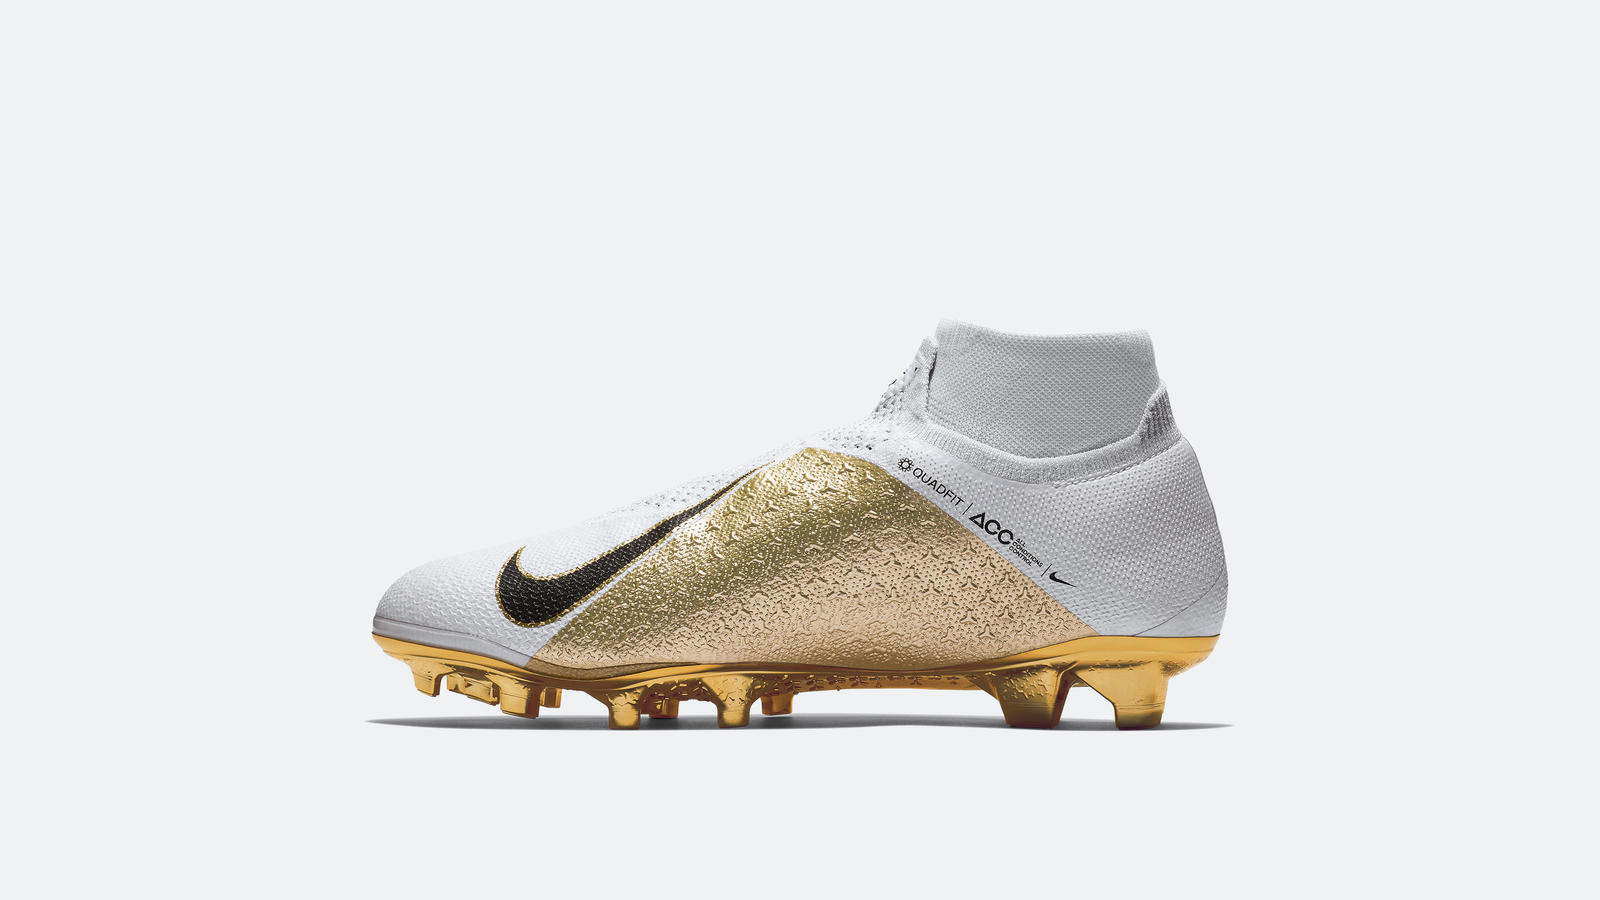 Nikefootball goldphantom 2018 re 6 native 1600